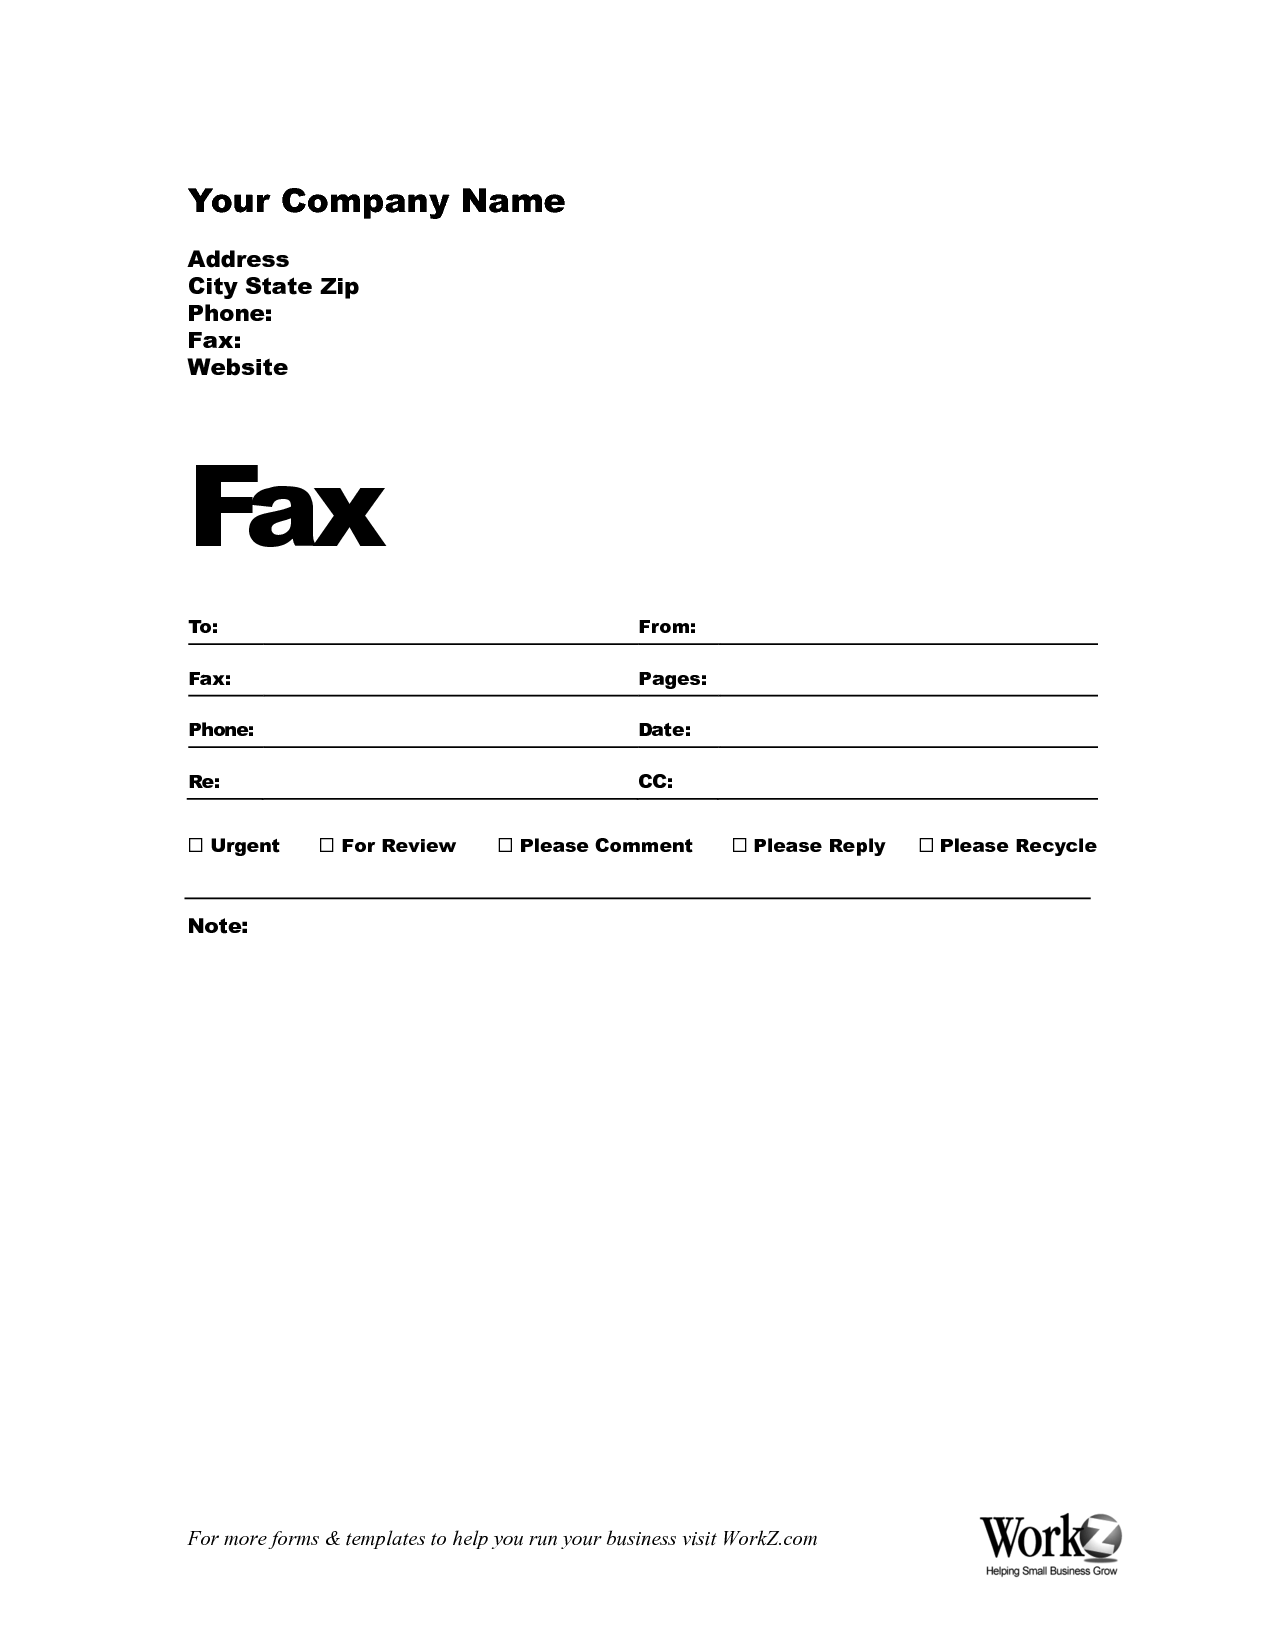 how to write fax cover letter Template – How to Format a Fax